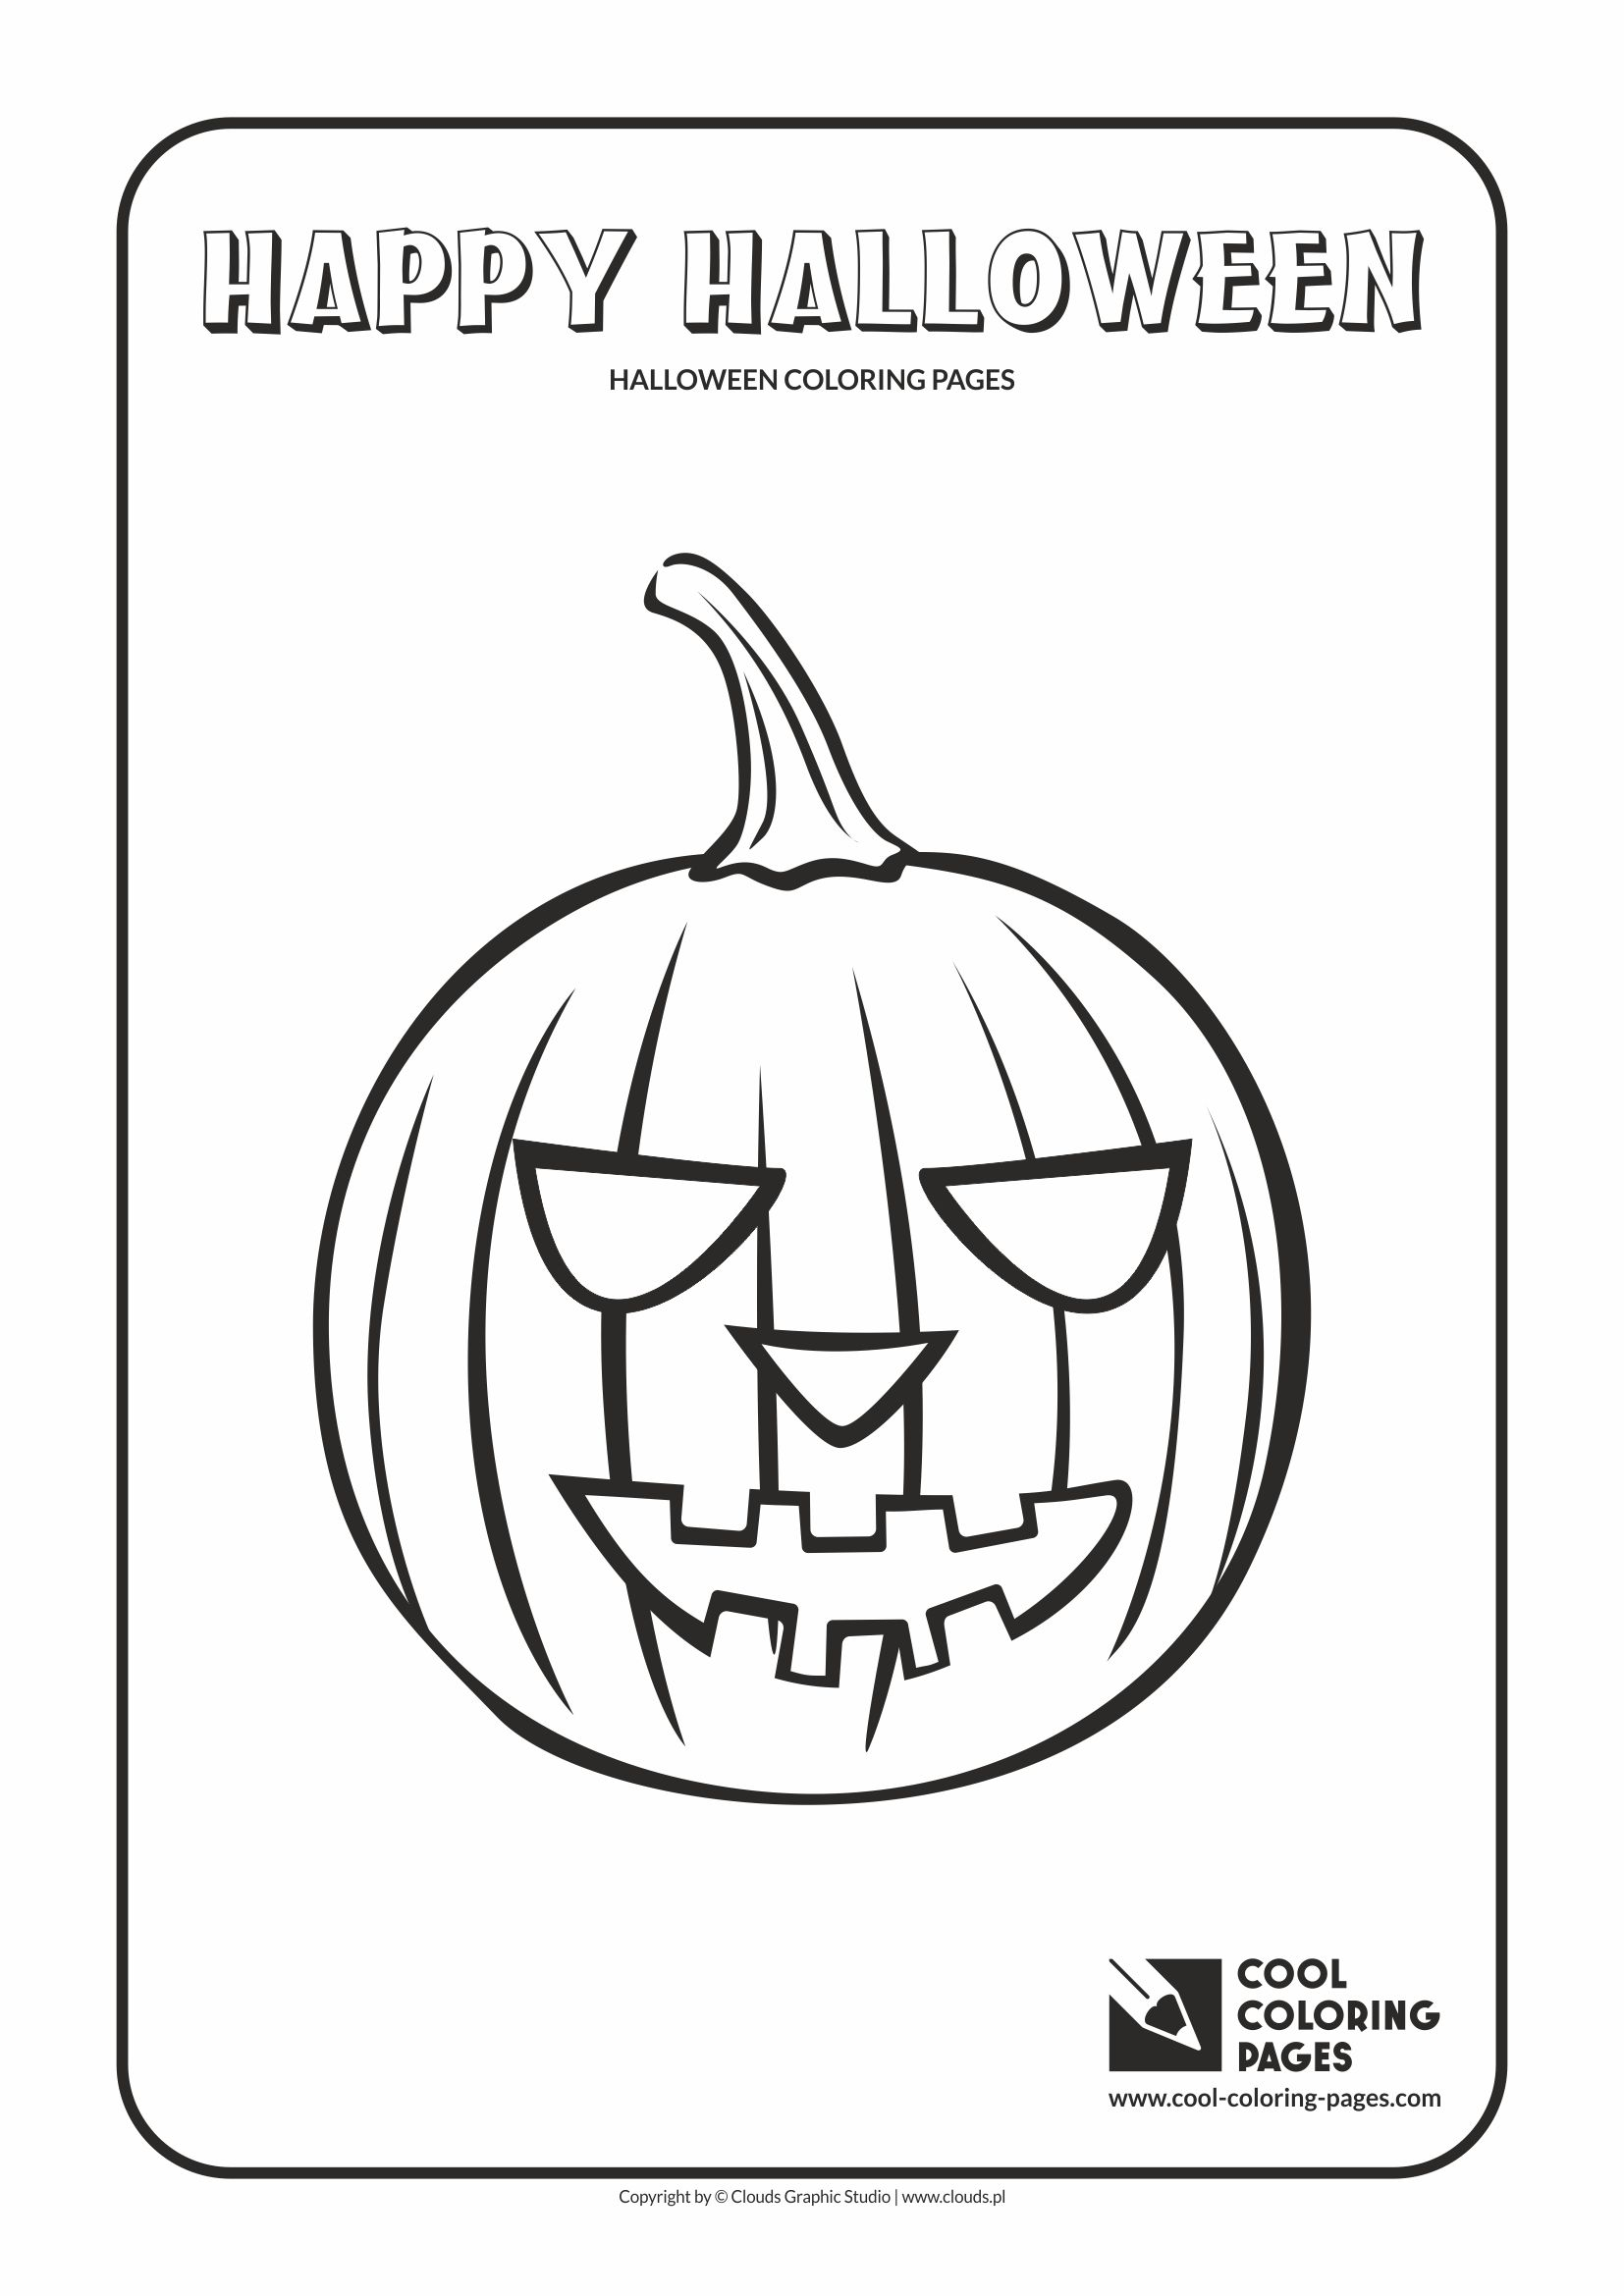 Halloween coloring pages | Cool Coloring Pages